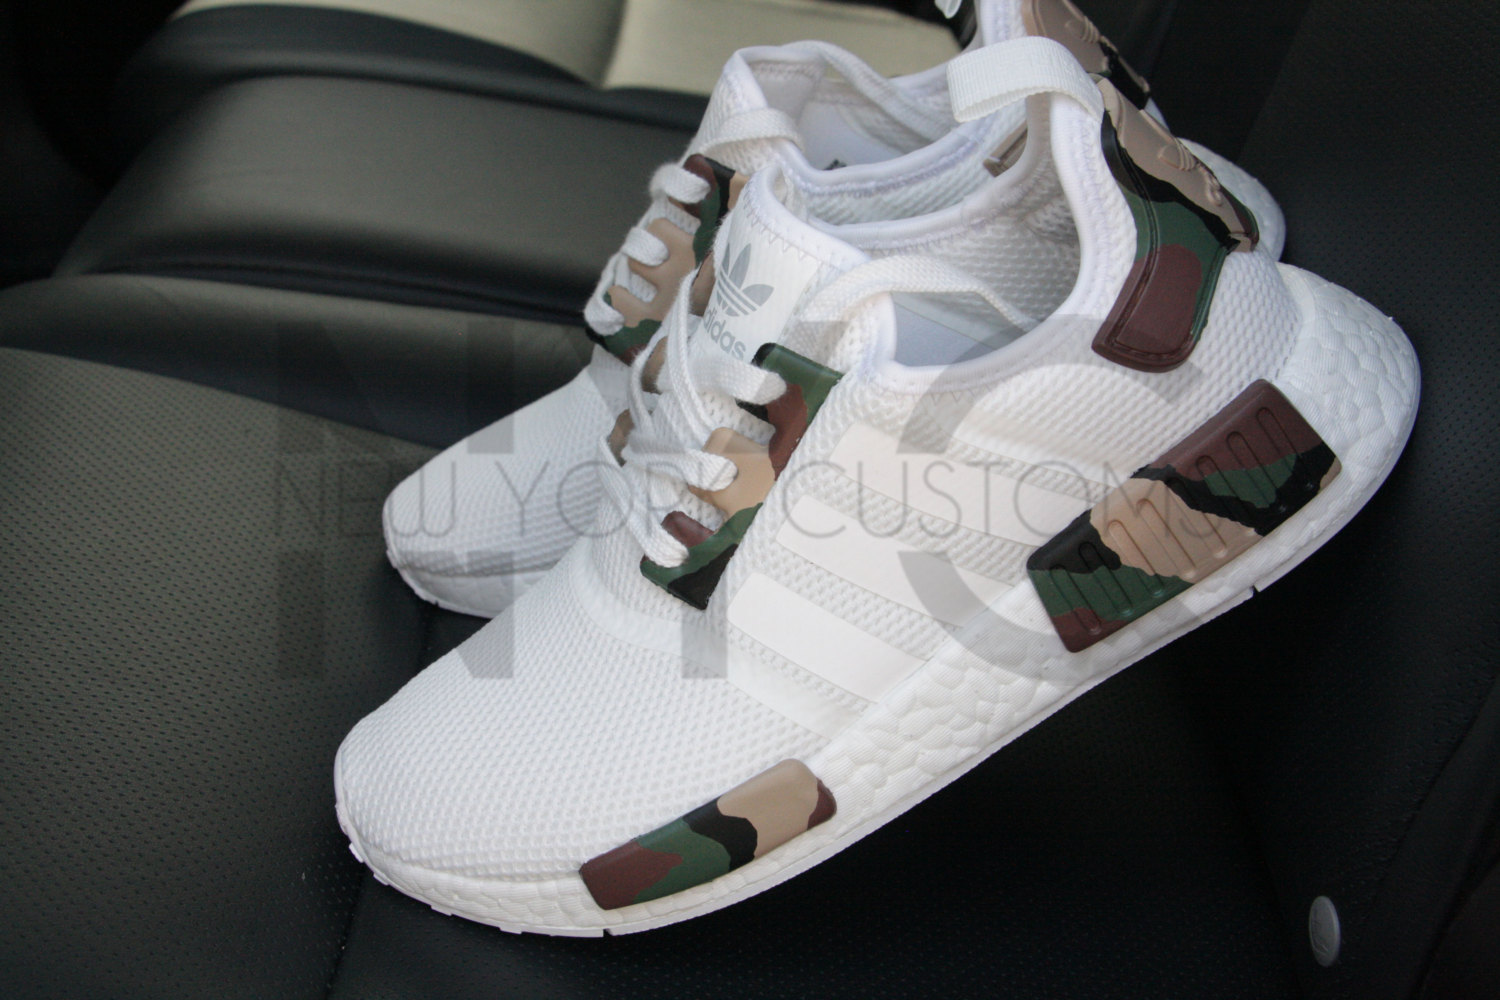 0cc0bbe225f3 Camo Adidas NMD Runner Triple White Custom Men